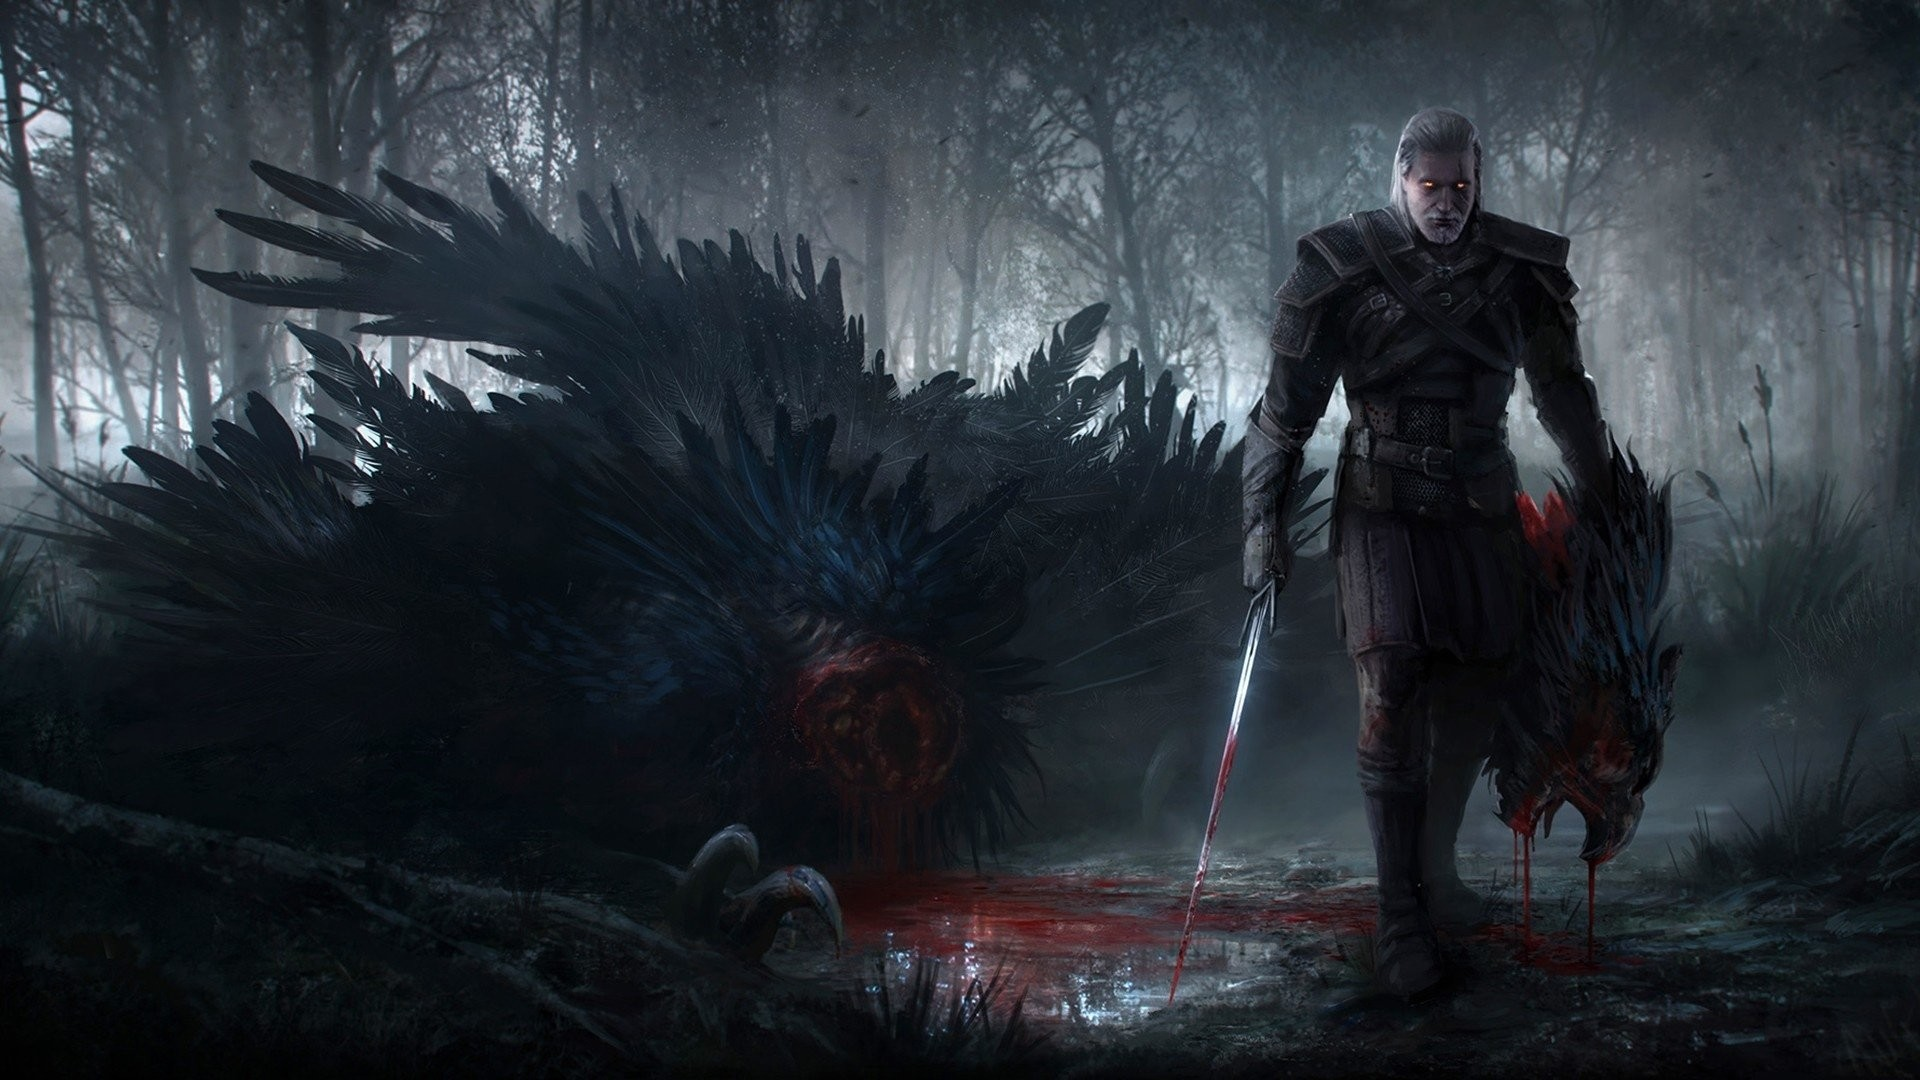 Witcher Wallpaper 82 Images